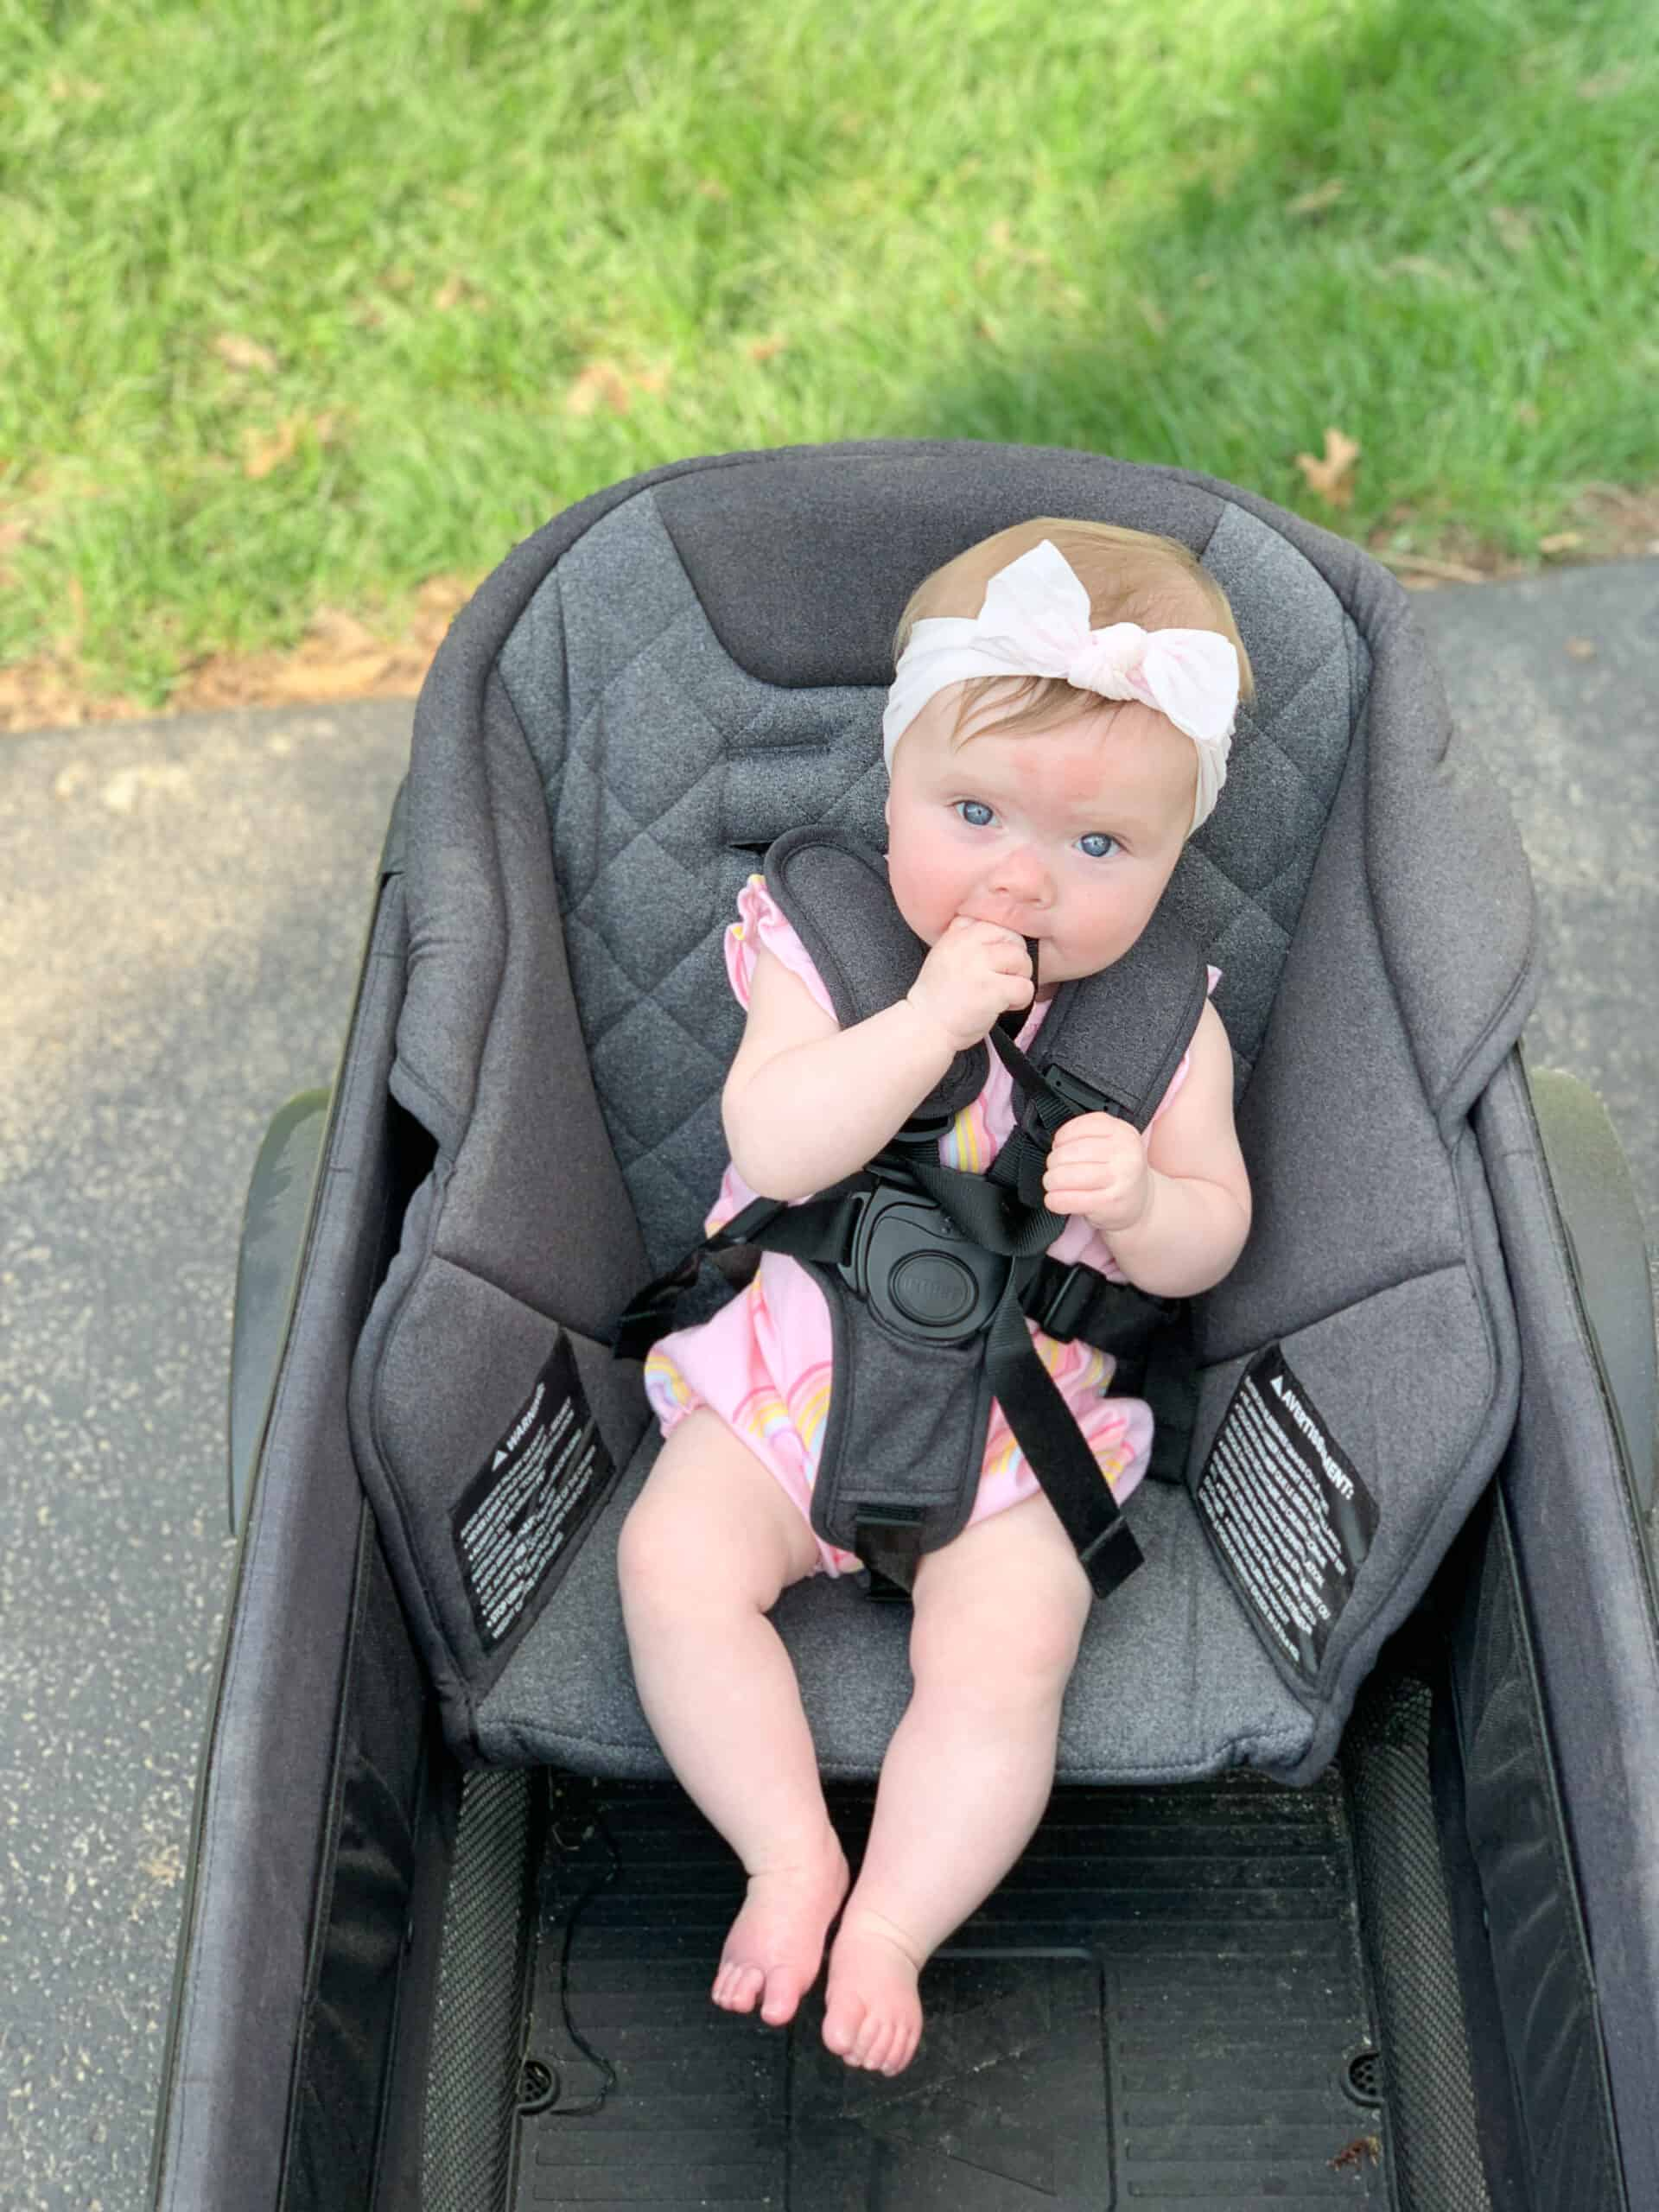 Baby girl in veer cruiser toddler seat